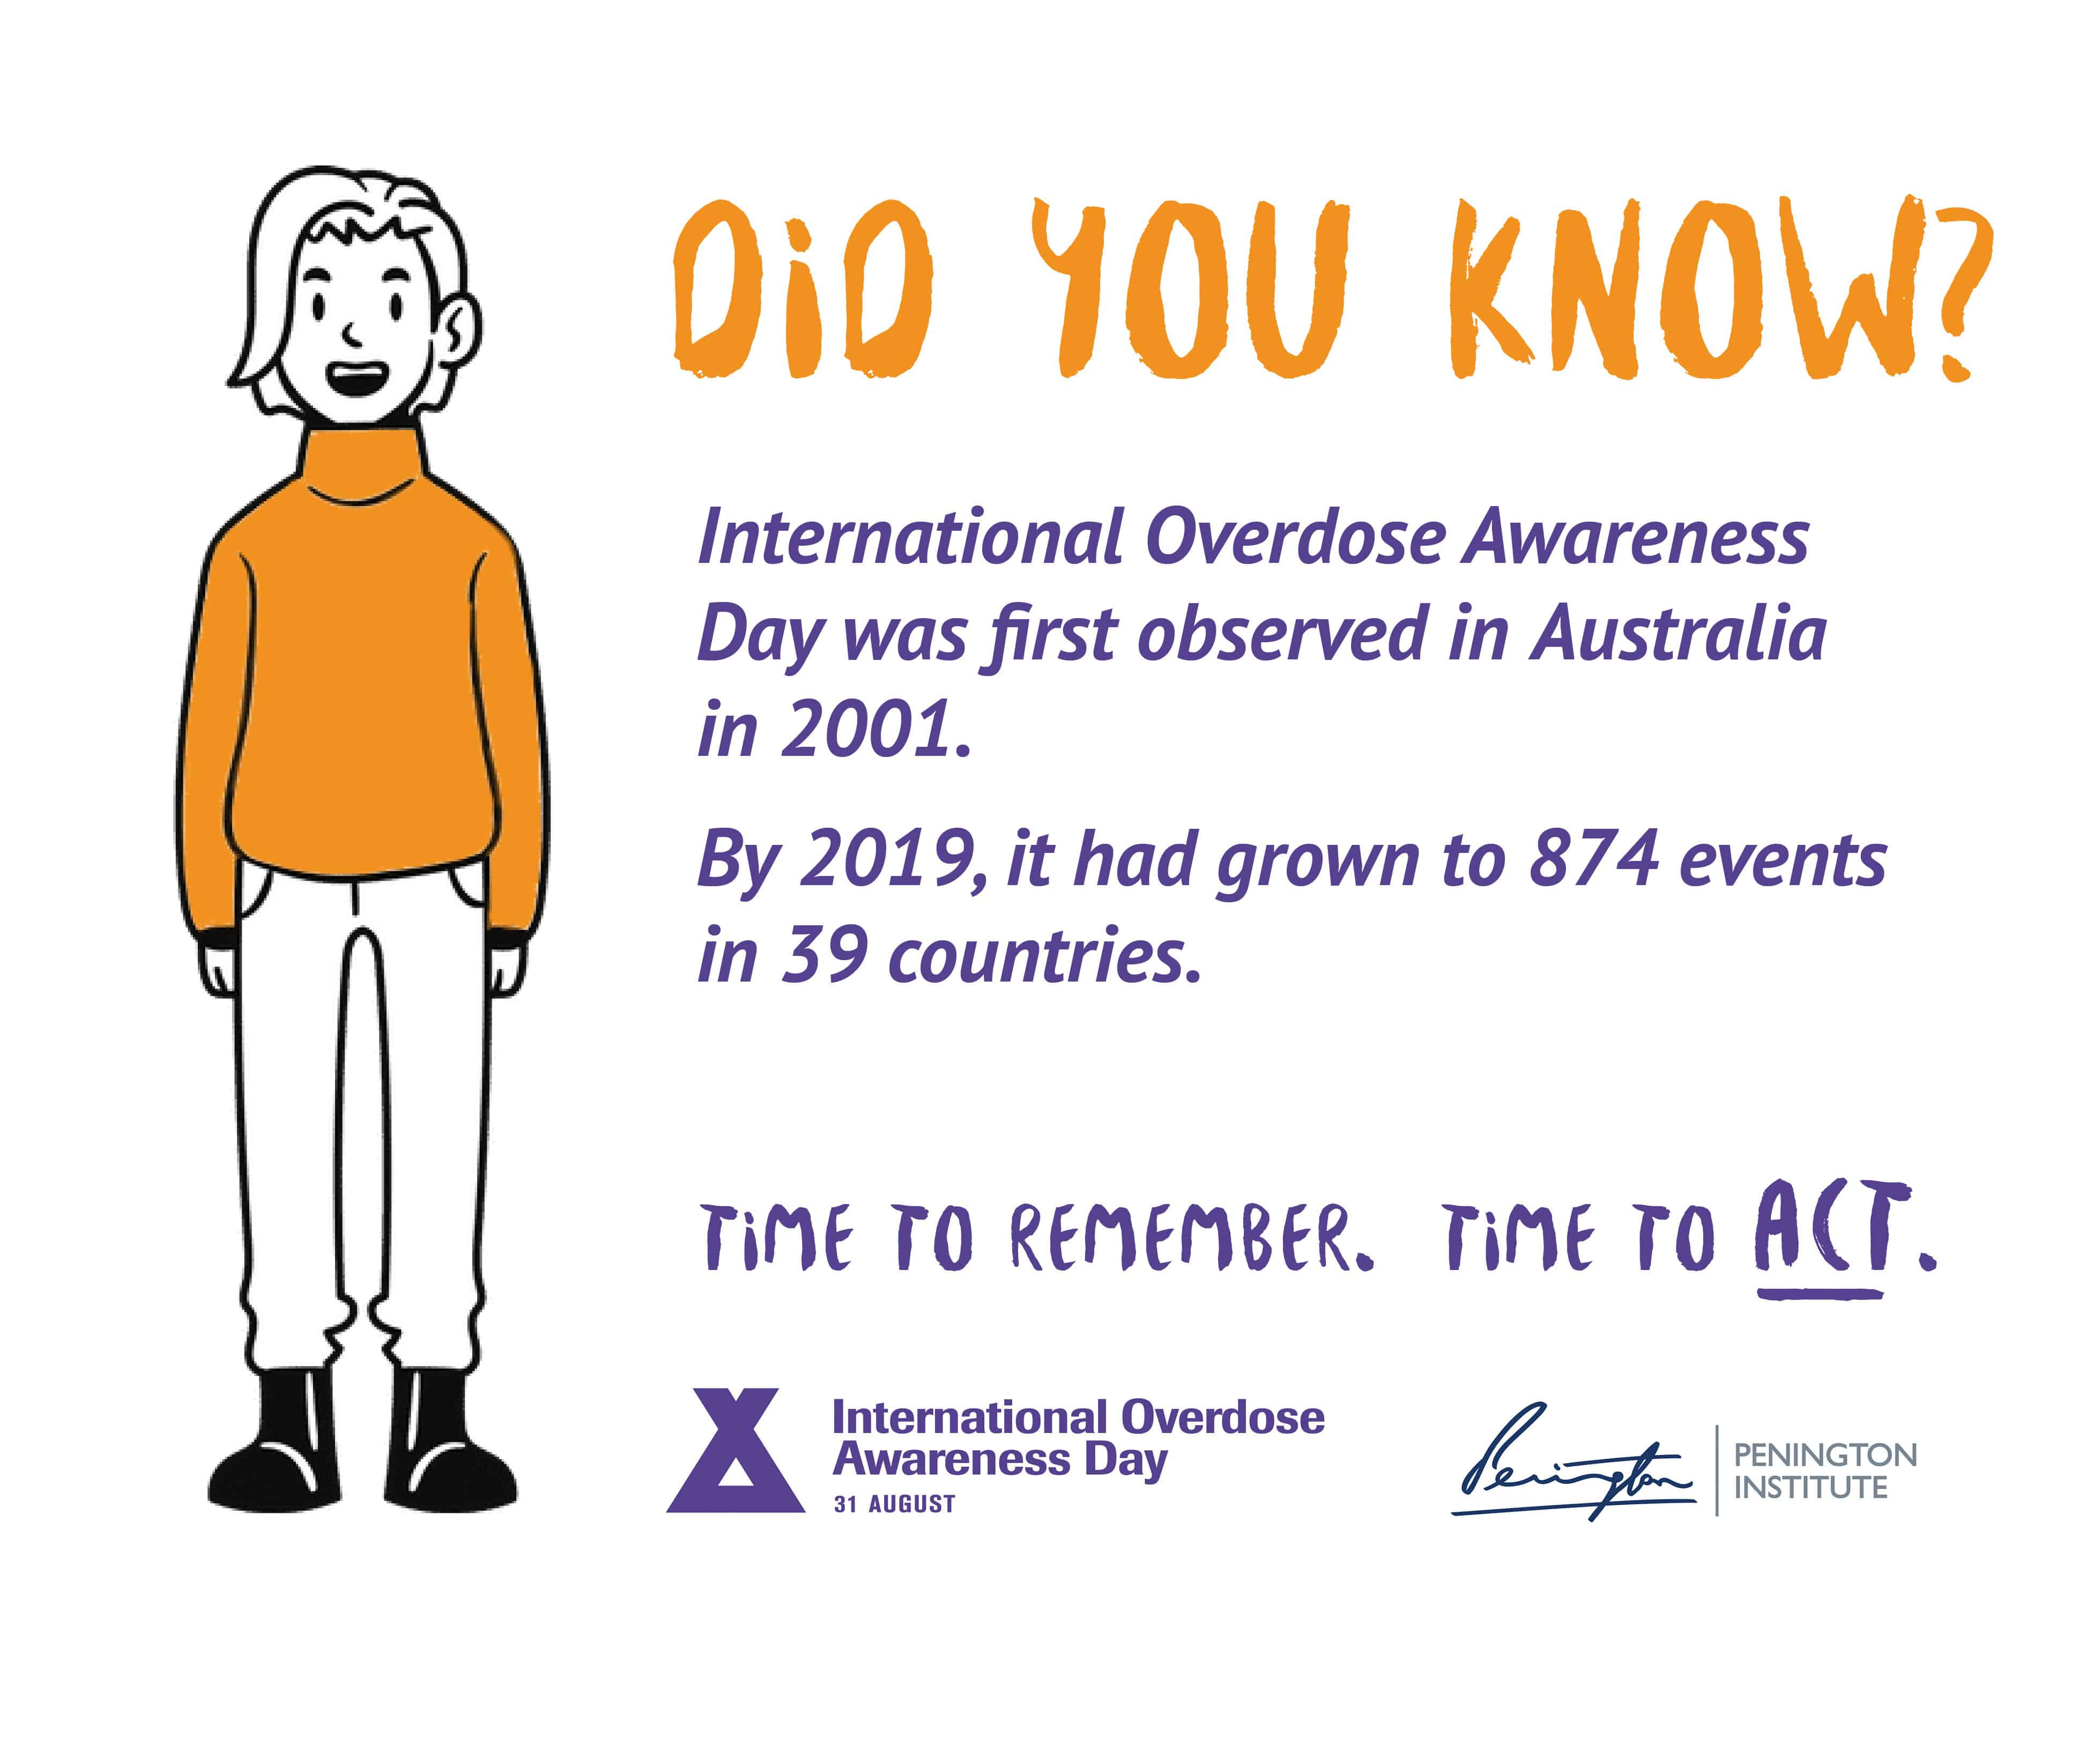 """A graphic from International Overdose Awareness Day and the Penington Institute. Heading reads """"DID YOU KNOW?"""" Text underneath reads International Overdose Awareness Day was first observed in Australia in 2001. By 2019, it had grown to 874 events in 39 countries. Time to remember. Time to act."""" A drawing of a person in an orange jumper stands alongside."""